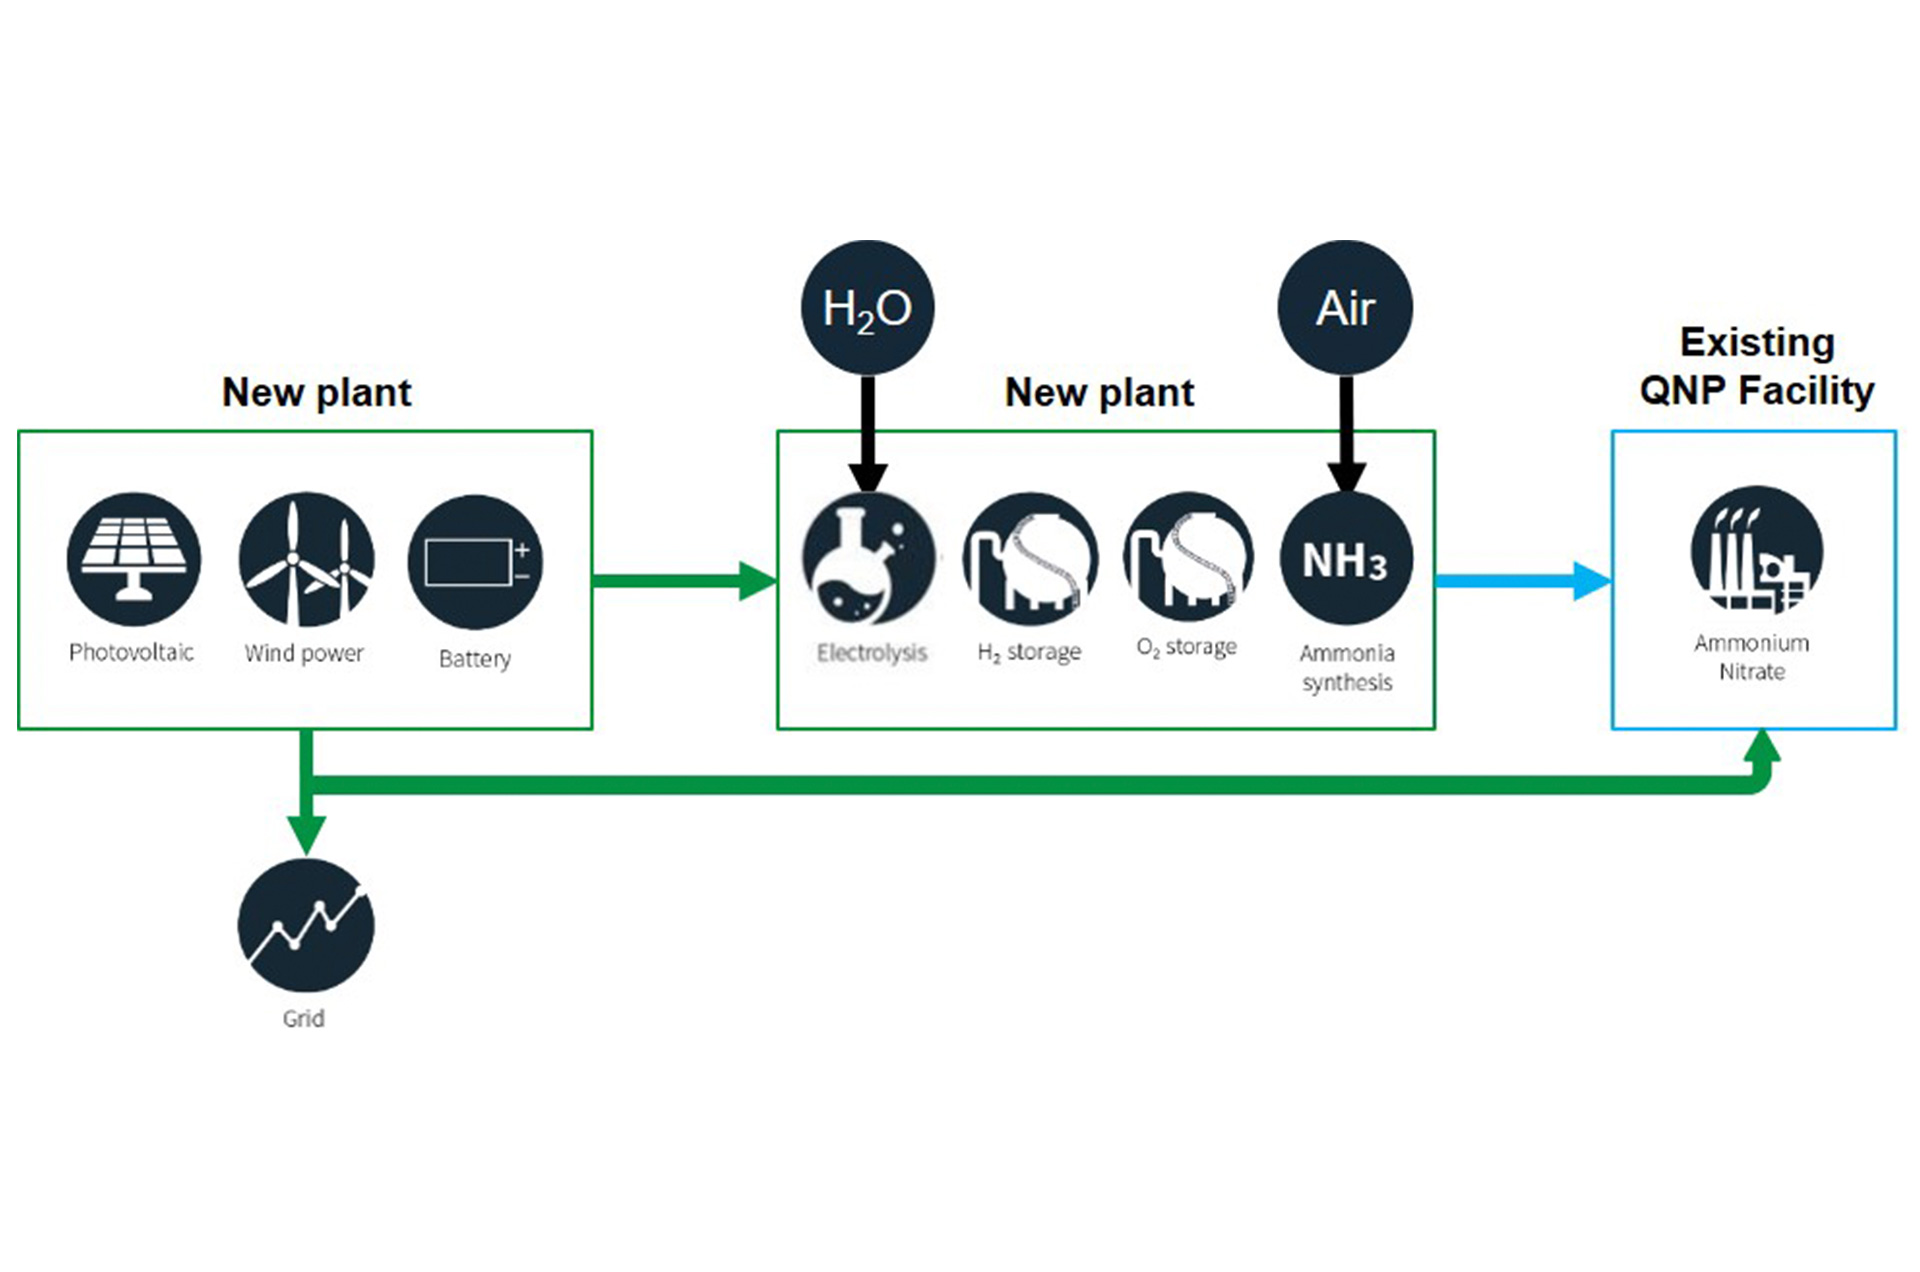 Image - How the Queensland Nitrates plant works